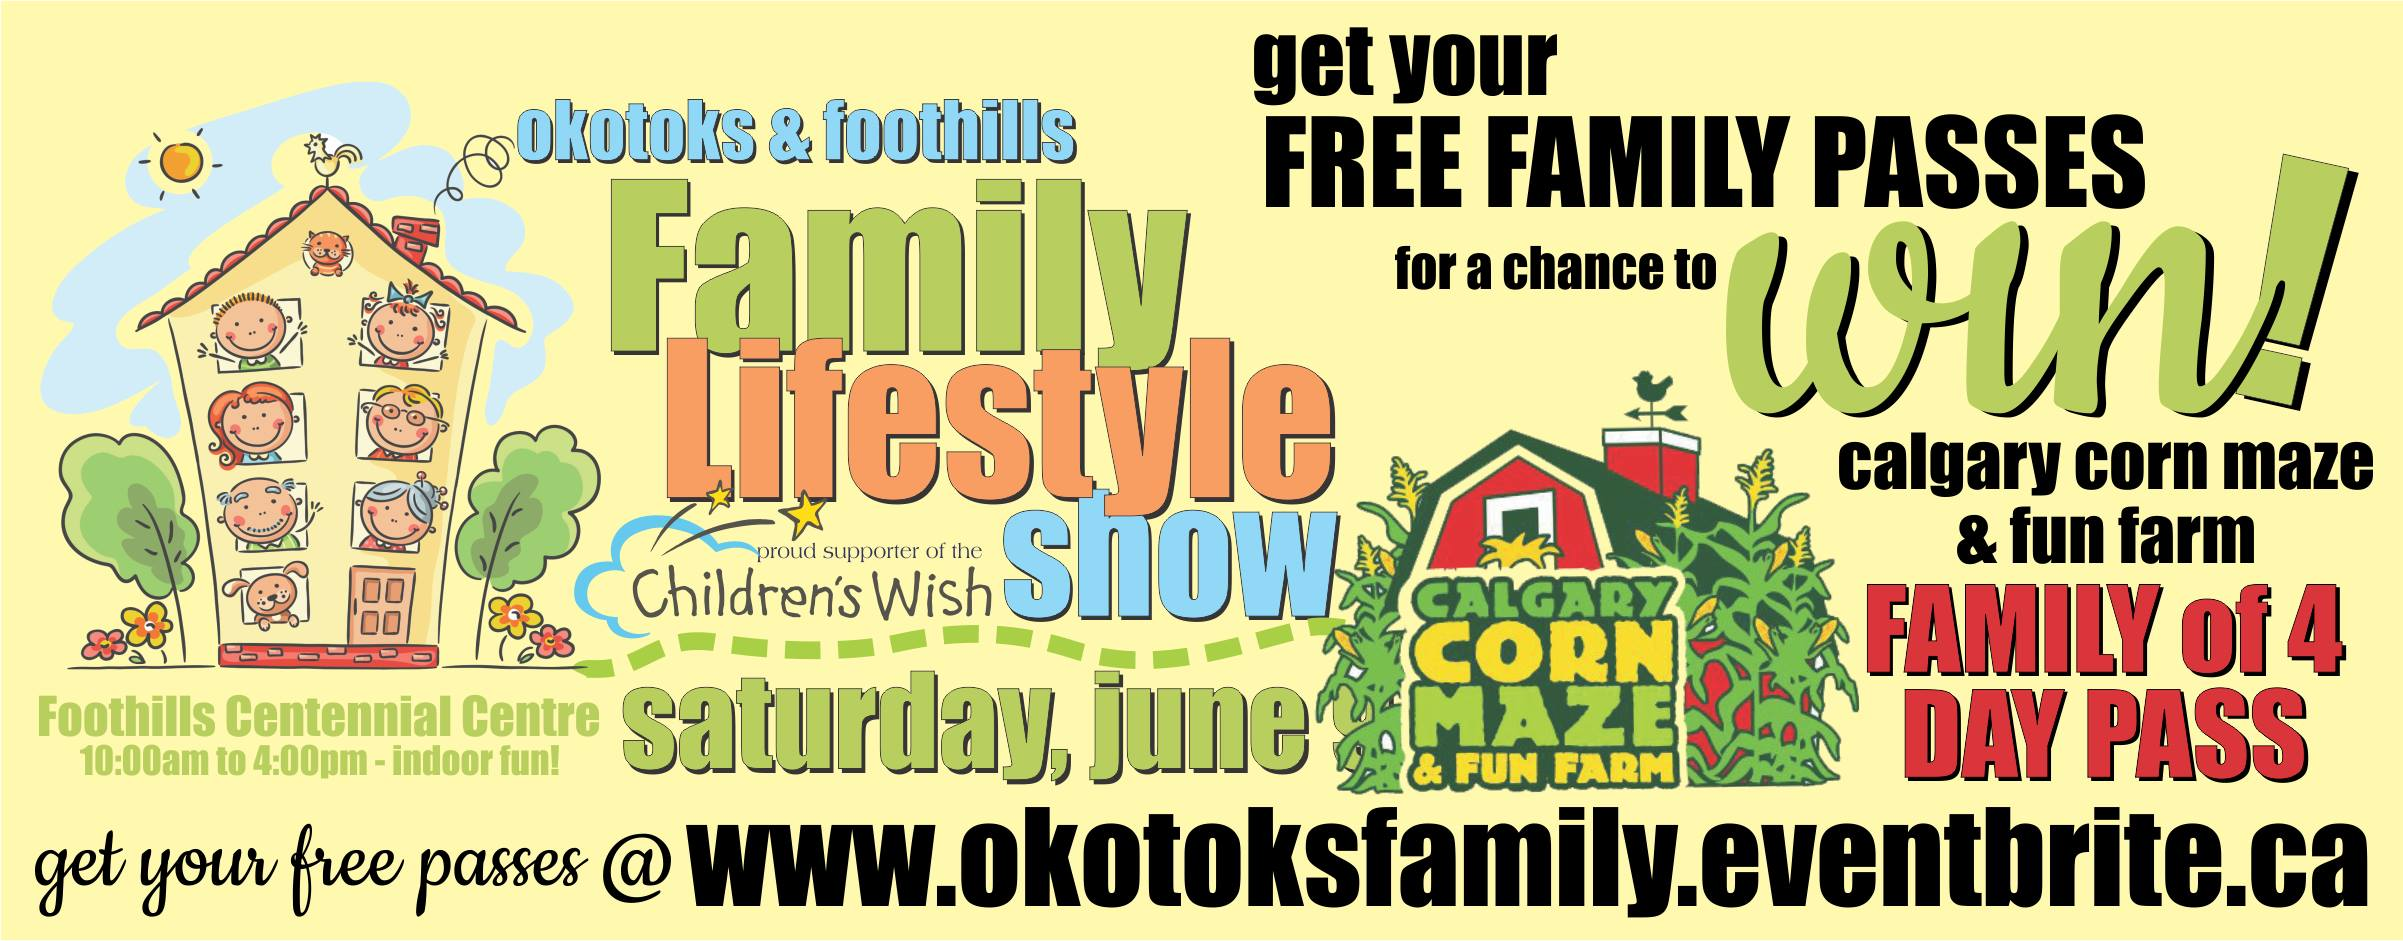 Okotoks Family Lifestyle Show FREE FAMILY PASS